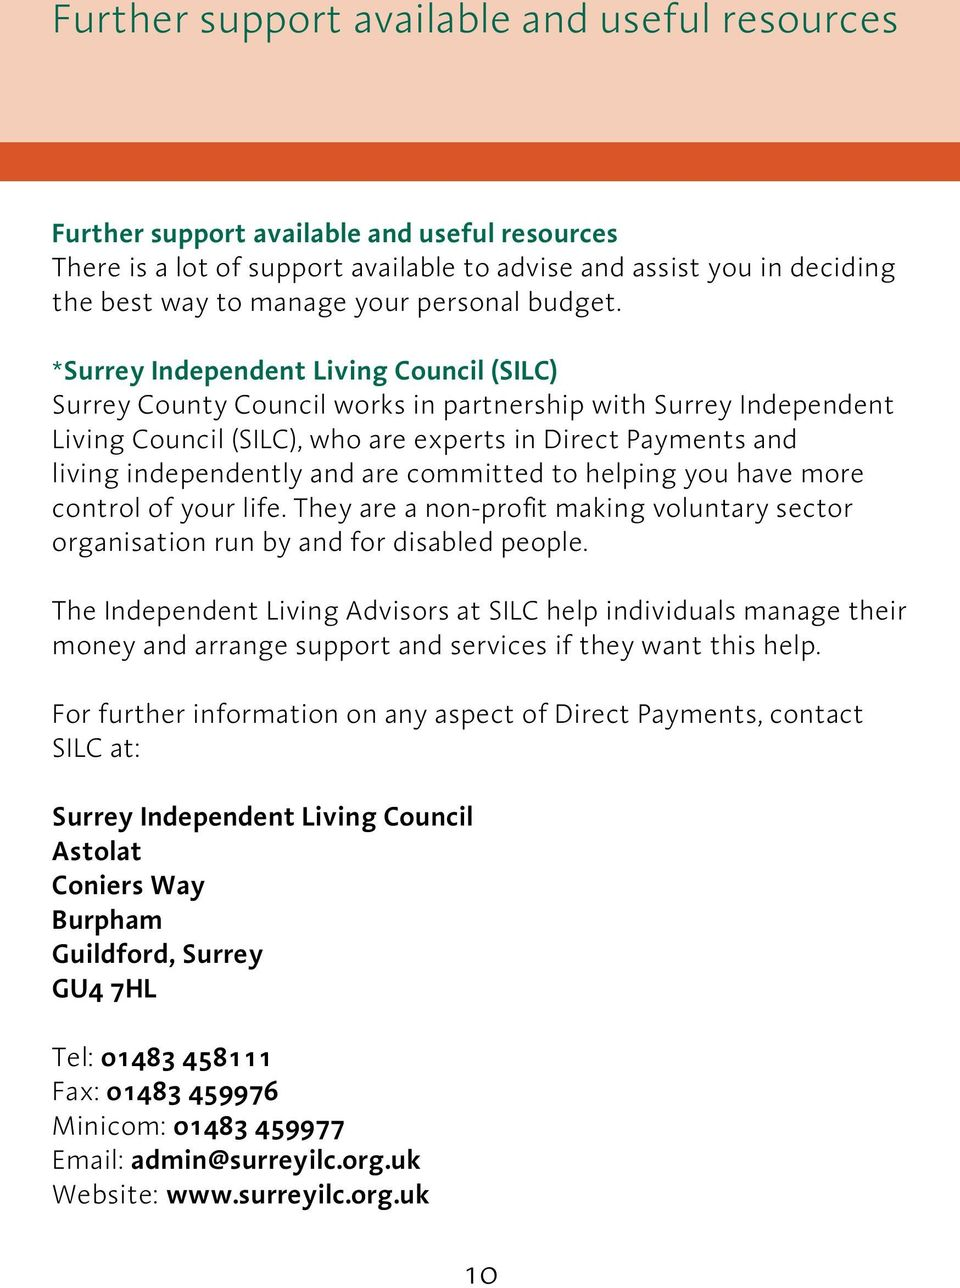 *Surrey Independent Living Council (SILC) Surrey County Council works in partnership with Surrey Independent Living Council (SILC), who are experts in Direct Payments and living independently and are